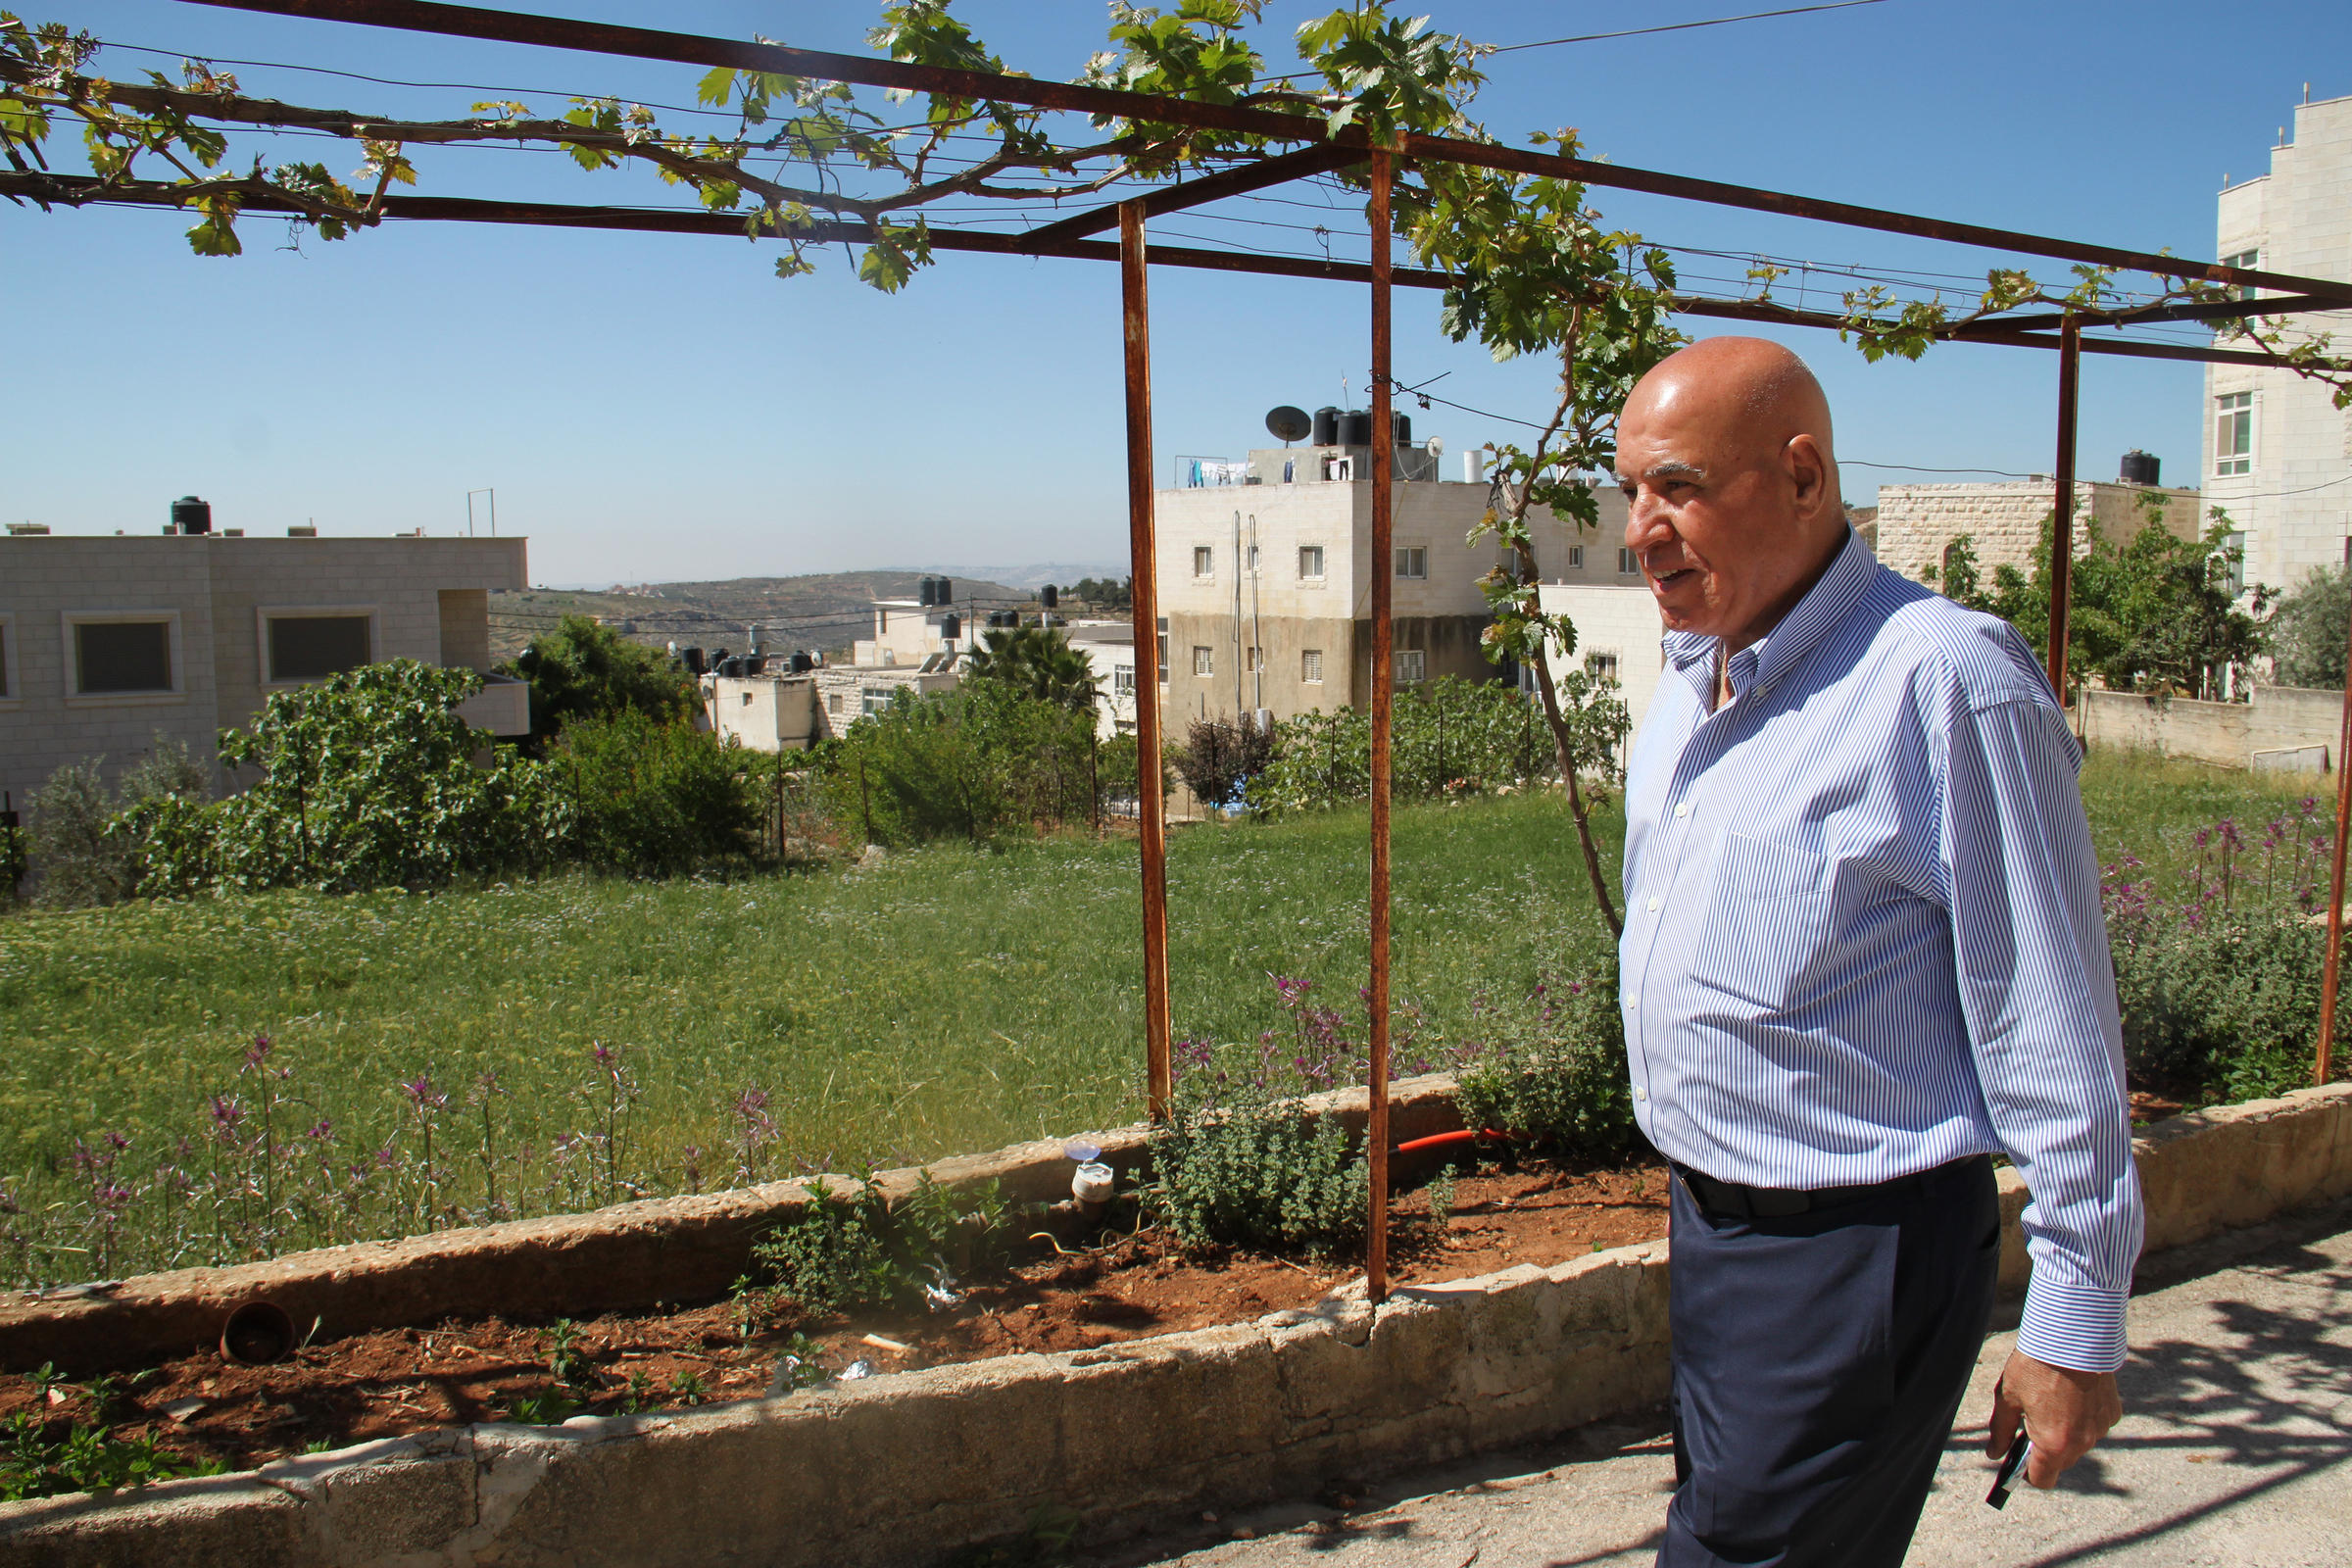 Omar Omar outside his family's home in the village of Deir Jarir. After living in the U.S. for decades he sees the West Bank with the eyes of an outsider